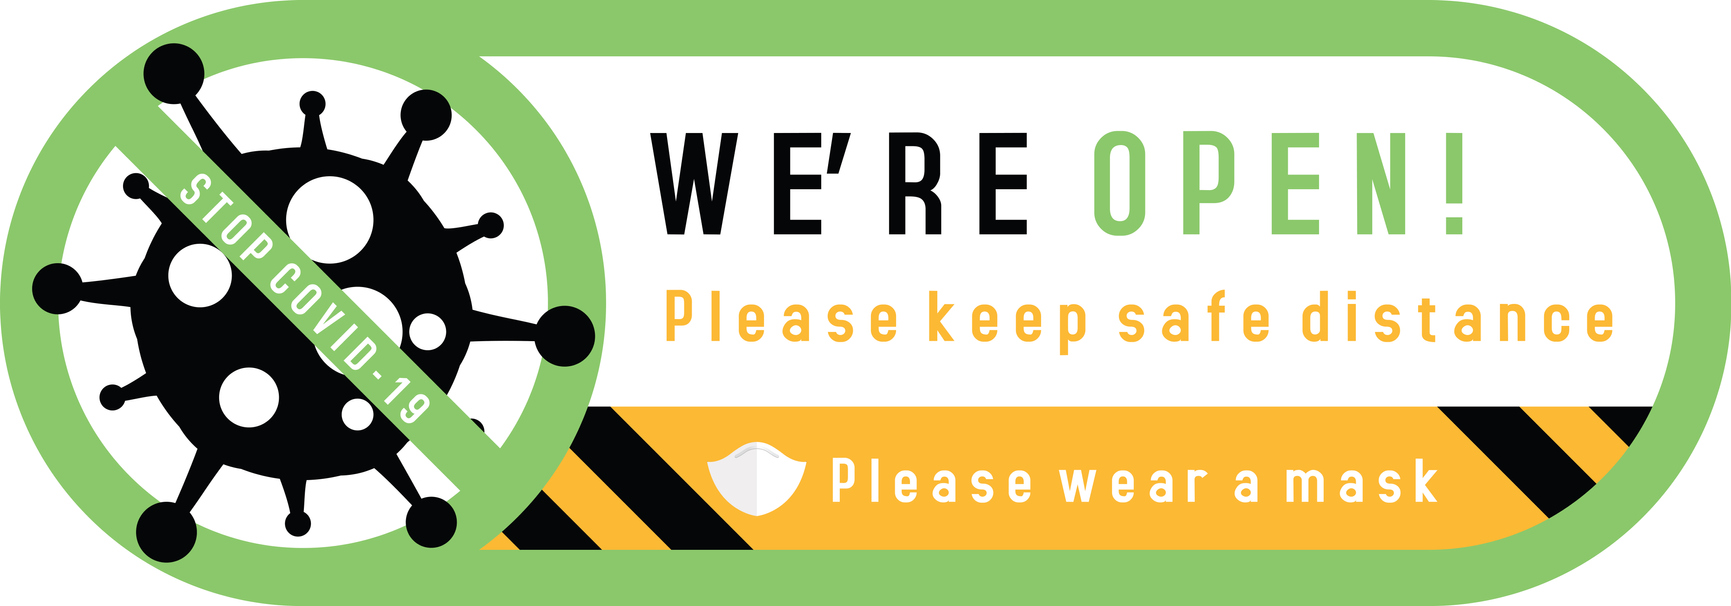 We are open sign plate on facade door of shop, store, cafe or restaurant. Signs on the door of   store cafe. Wear a mask and keep safe distance. Reopening after quarantine of coronavirus COVID-19. Vector illustration.